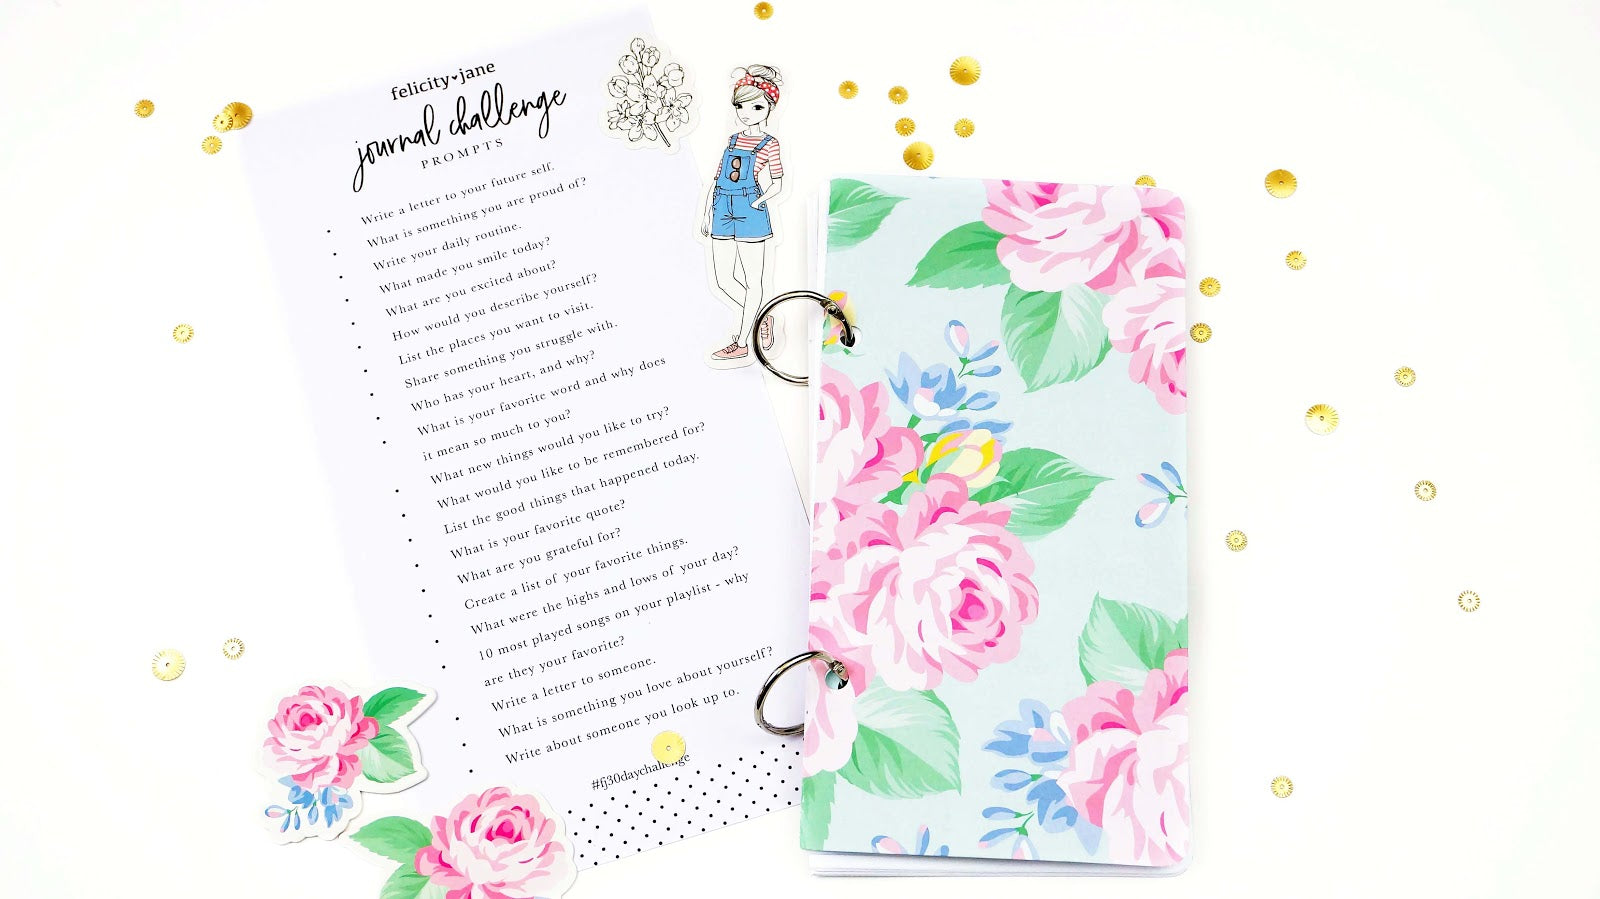 FJJournal30days All About Me 1 - Lindsey Lanning - Felicity Jane